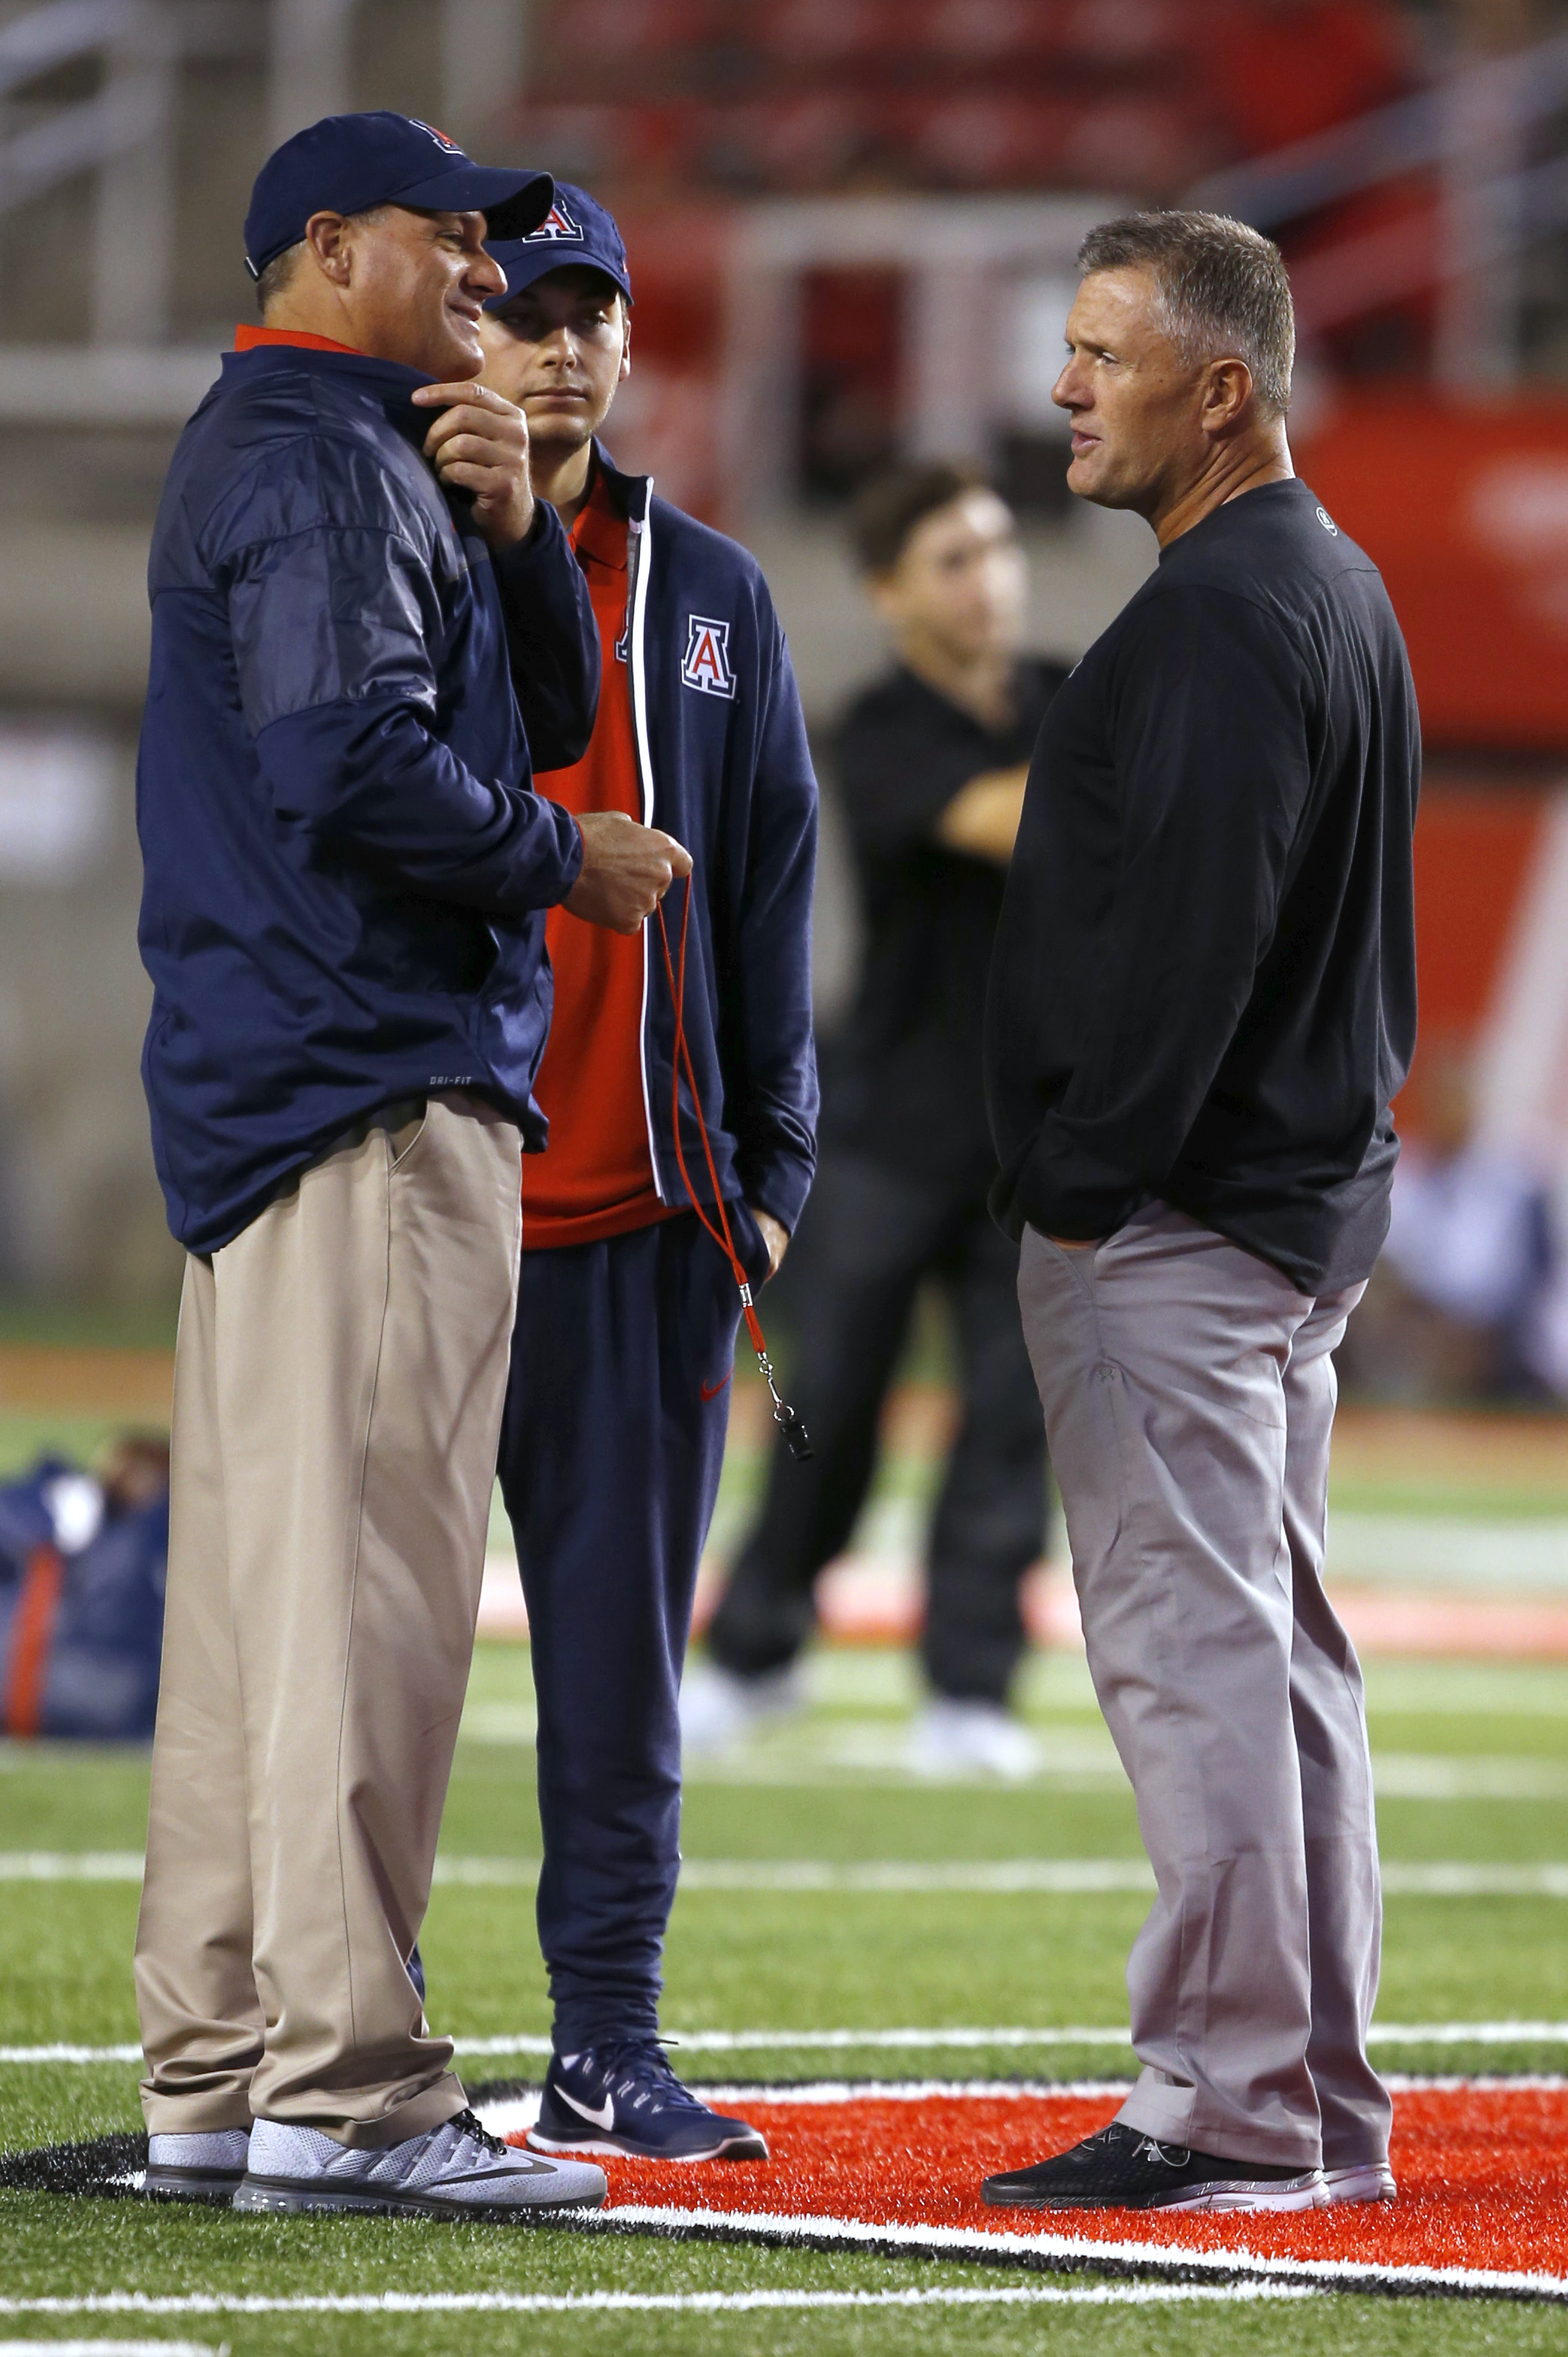 Arizona coach Rich Rodriguez, left, talks with Utah coach Kyle Whittingham, right, before an NCAA college football game, Saturday, Oct. 8, 2016, in Salt Lake City. (AP Photo/George Frey)